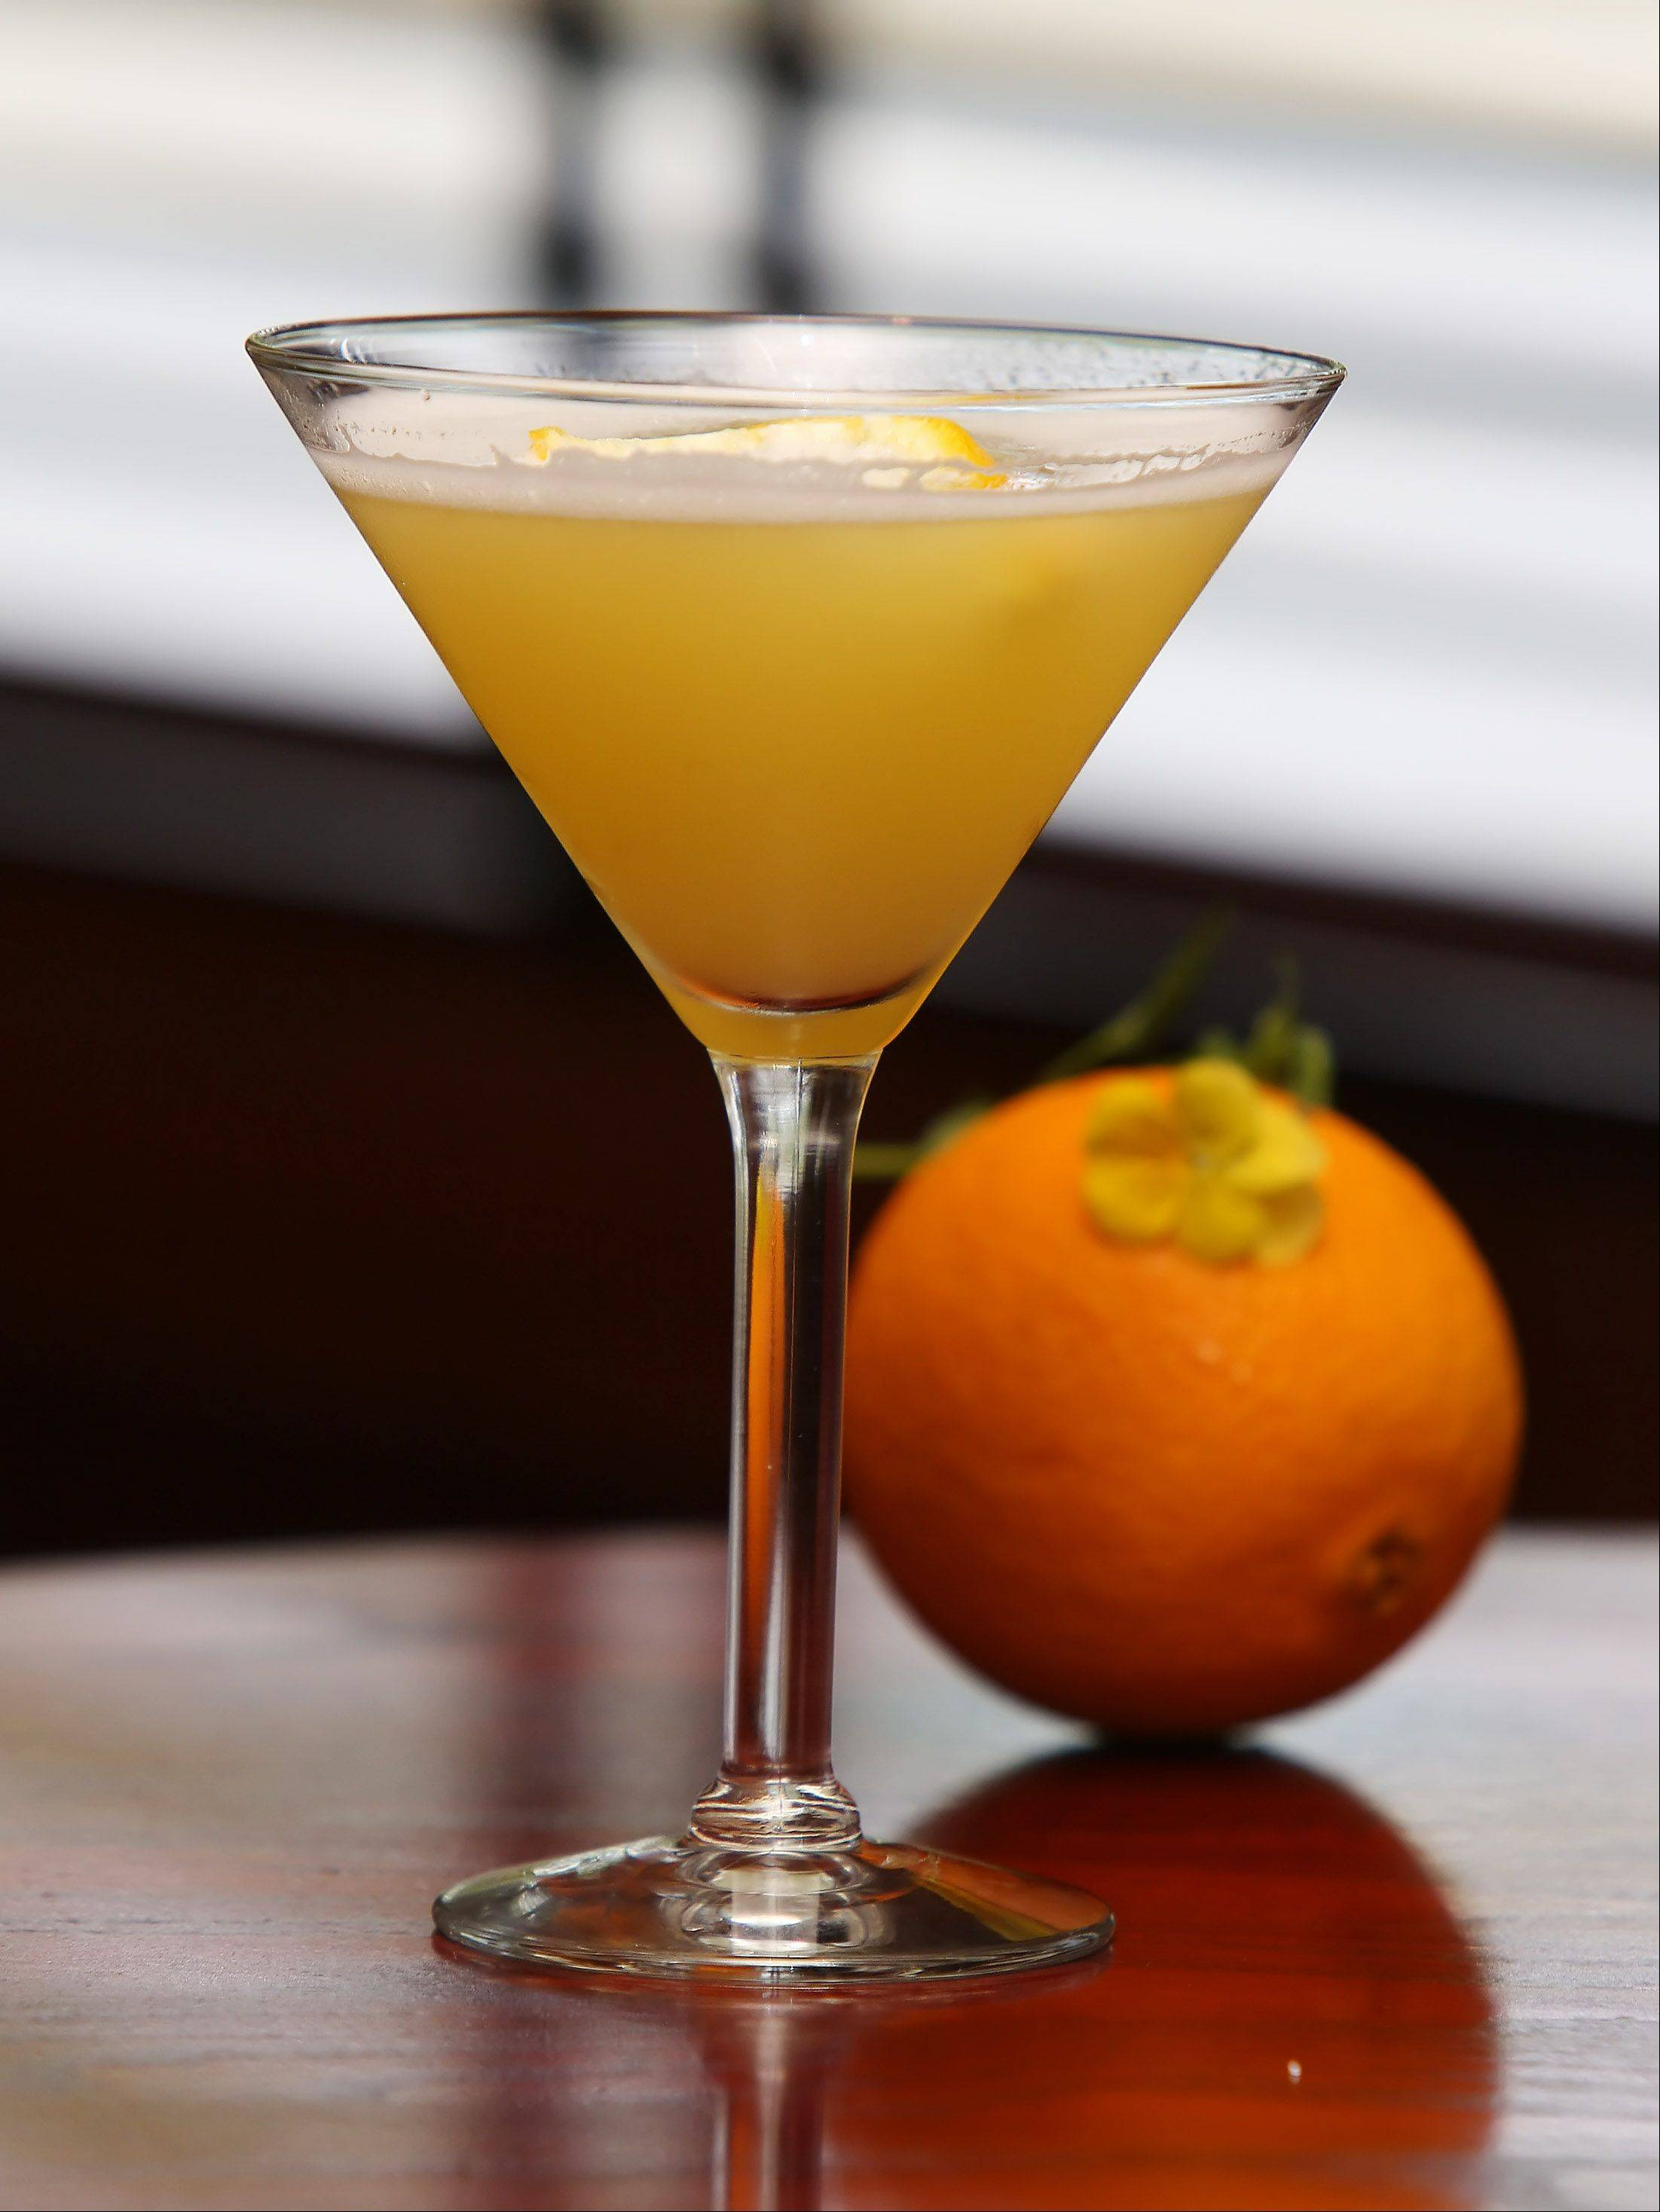 The Knockout is the signature drink at Sullivan's Steakhouse in Lincolnshire.